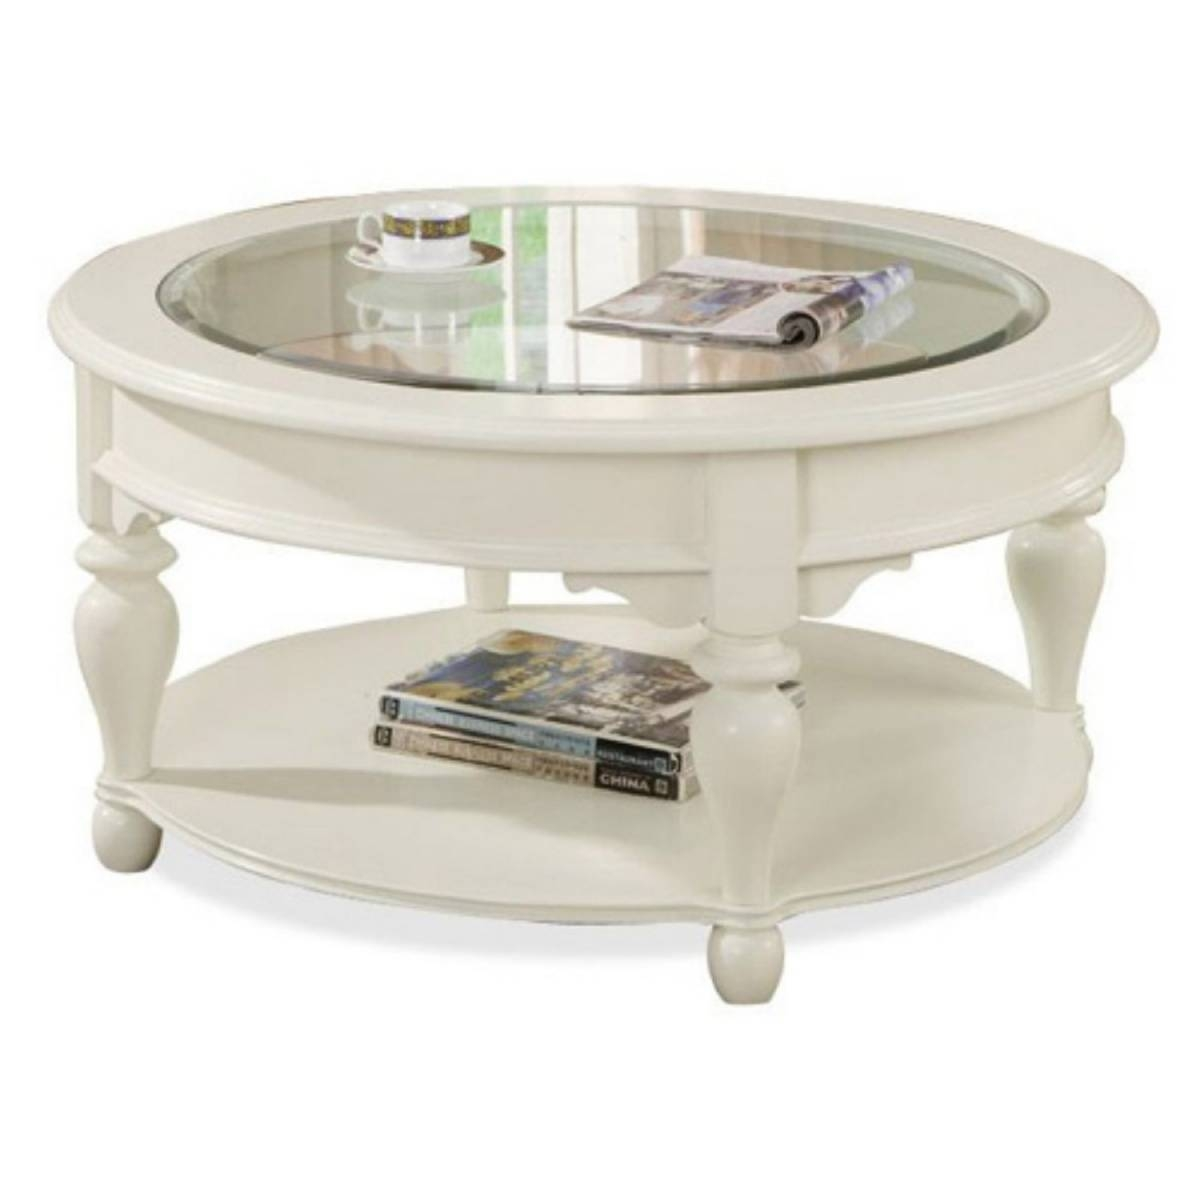 Round White Coffee Tables | Coffee Tables Decoration regarding White Coffee Tables With Storage (Image 21 of 30)